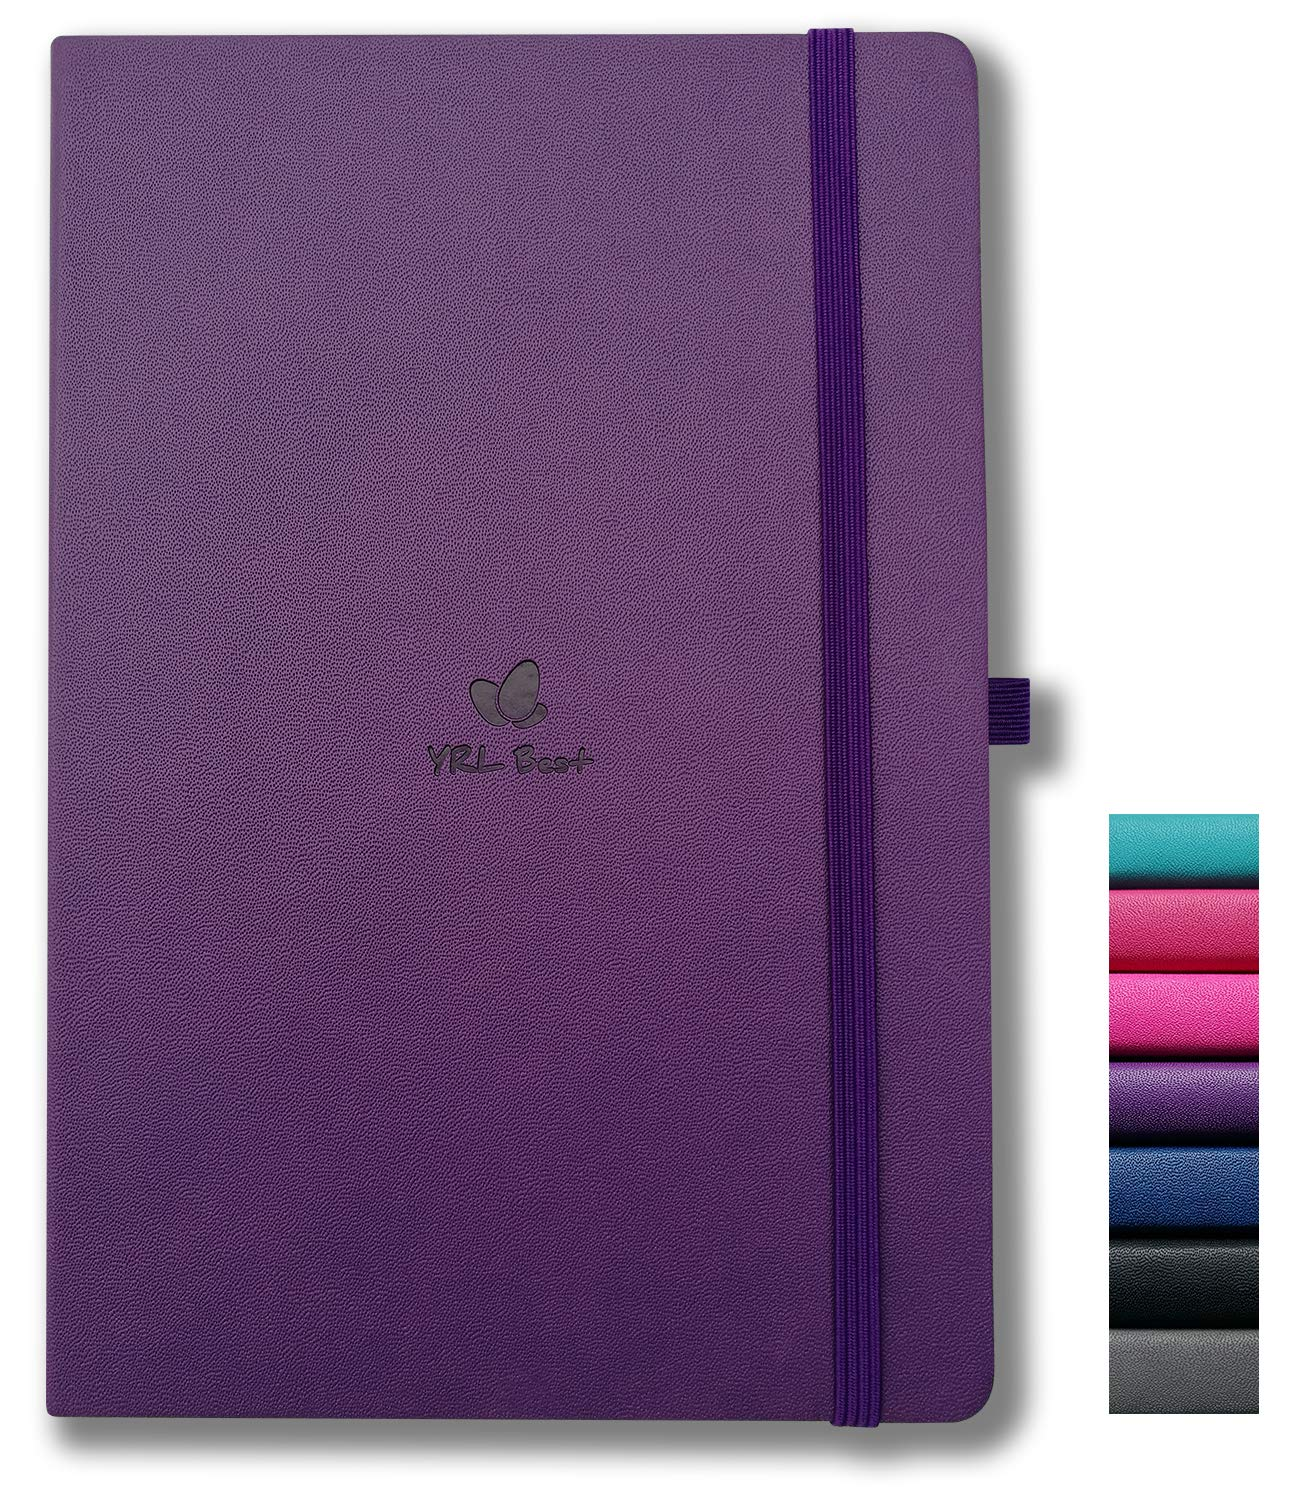 """YRL Best A5 Hardcover Notebook Journal with Pen Loop, College Ruled/Lined, 5.7x8.3"""", 192 Numbered Pages of Premium Thick Paper, Fine PU Leather, Sewn Bound, Elastic Closure, Lays Flat, Purple"""